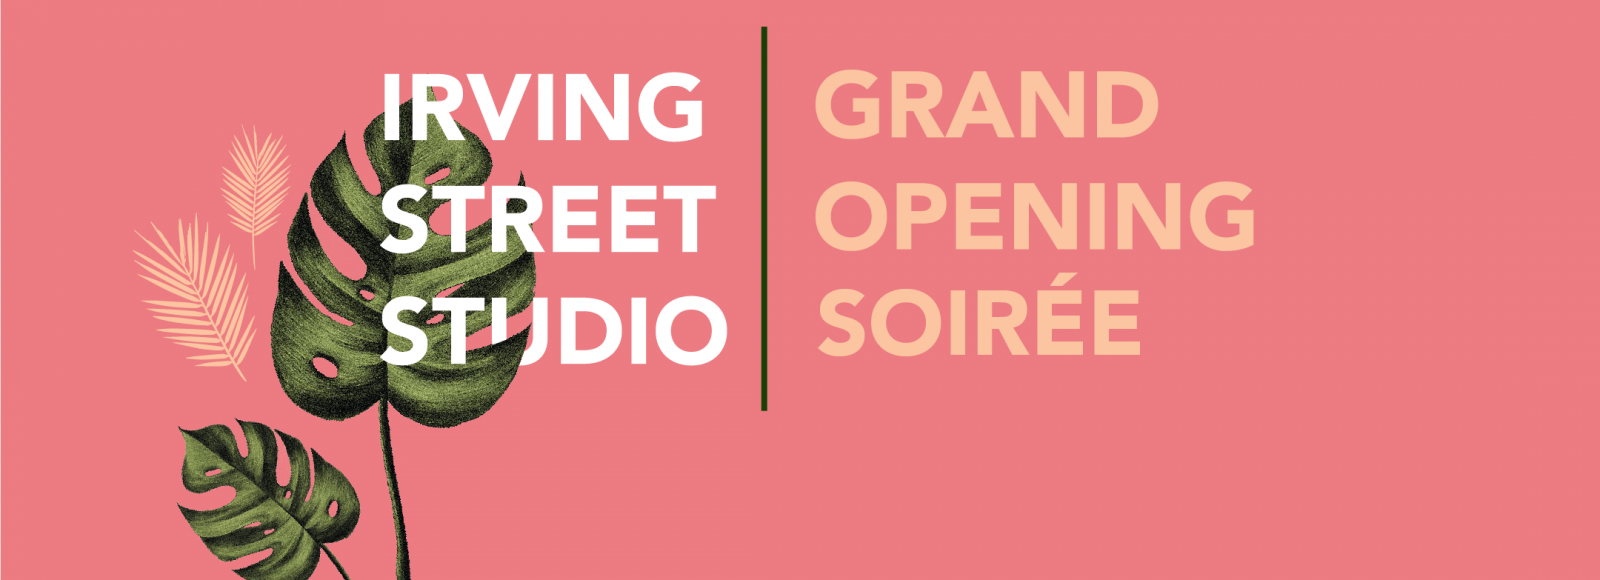 poster for Irving Street Studio grand opening party